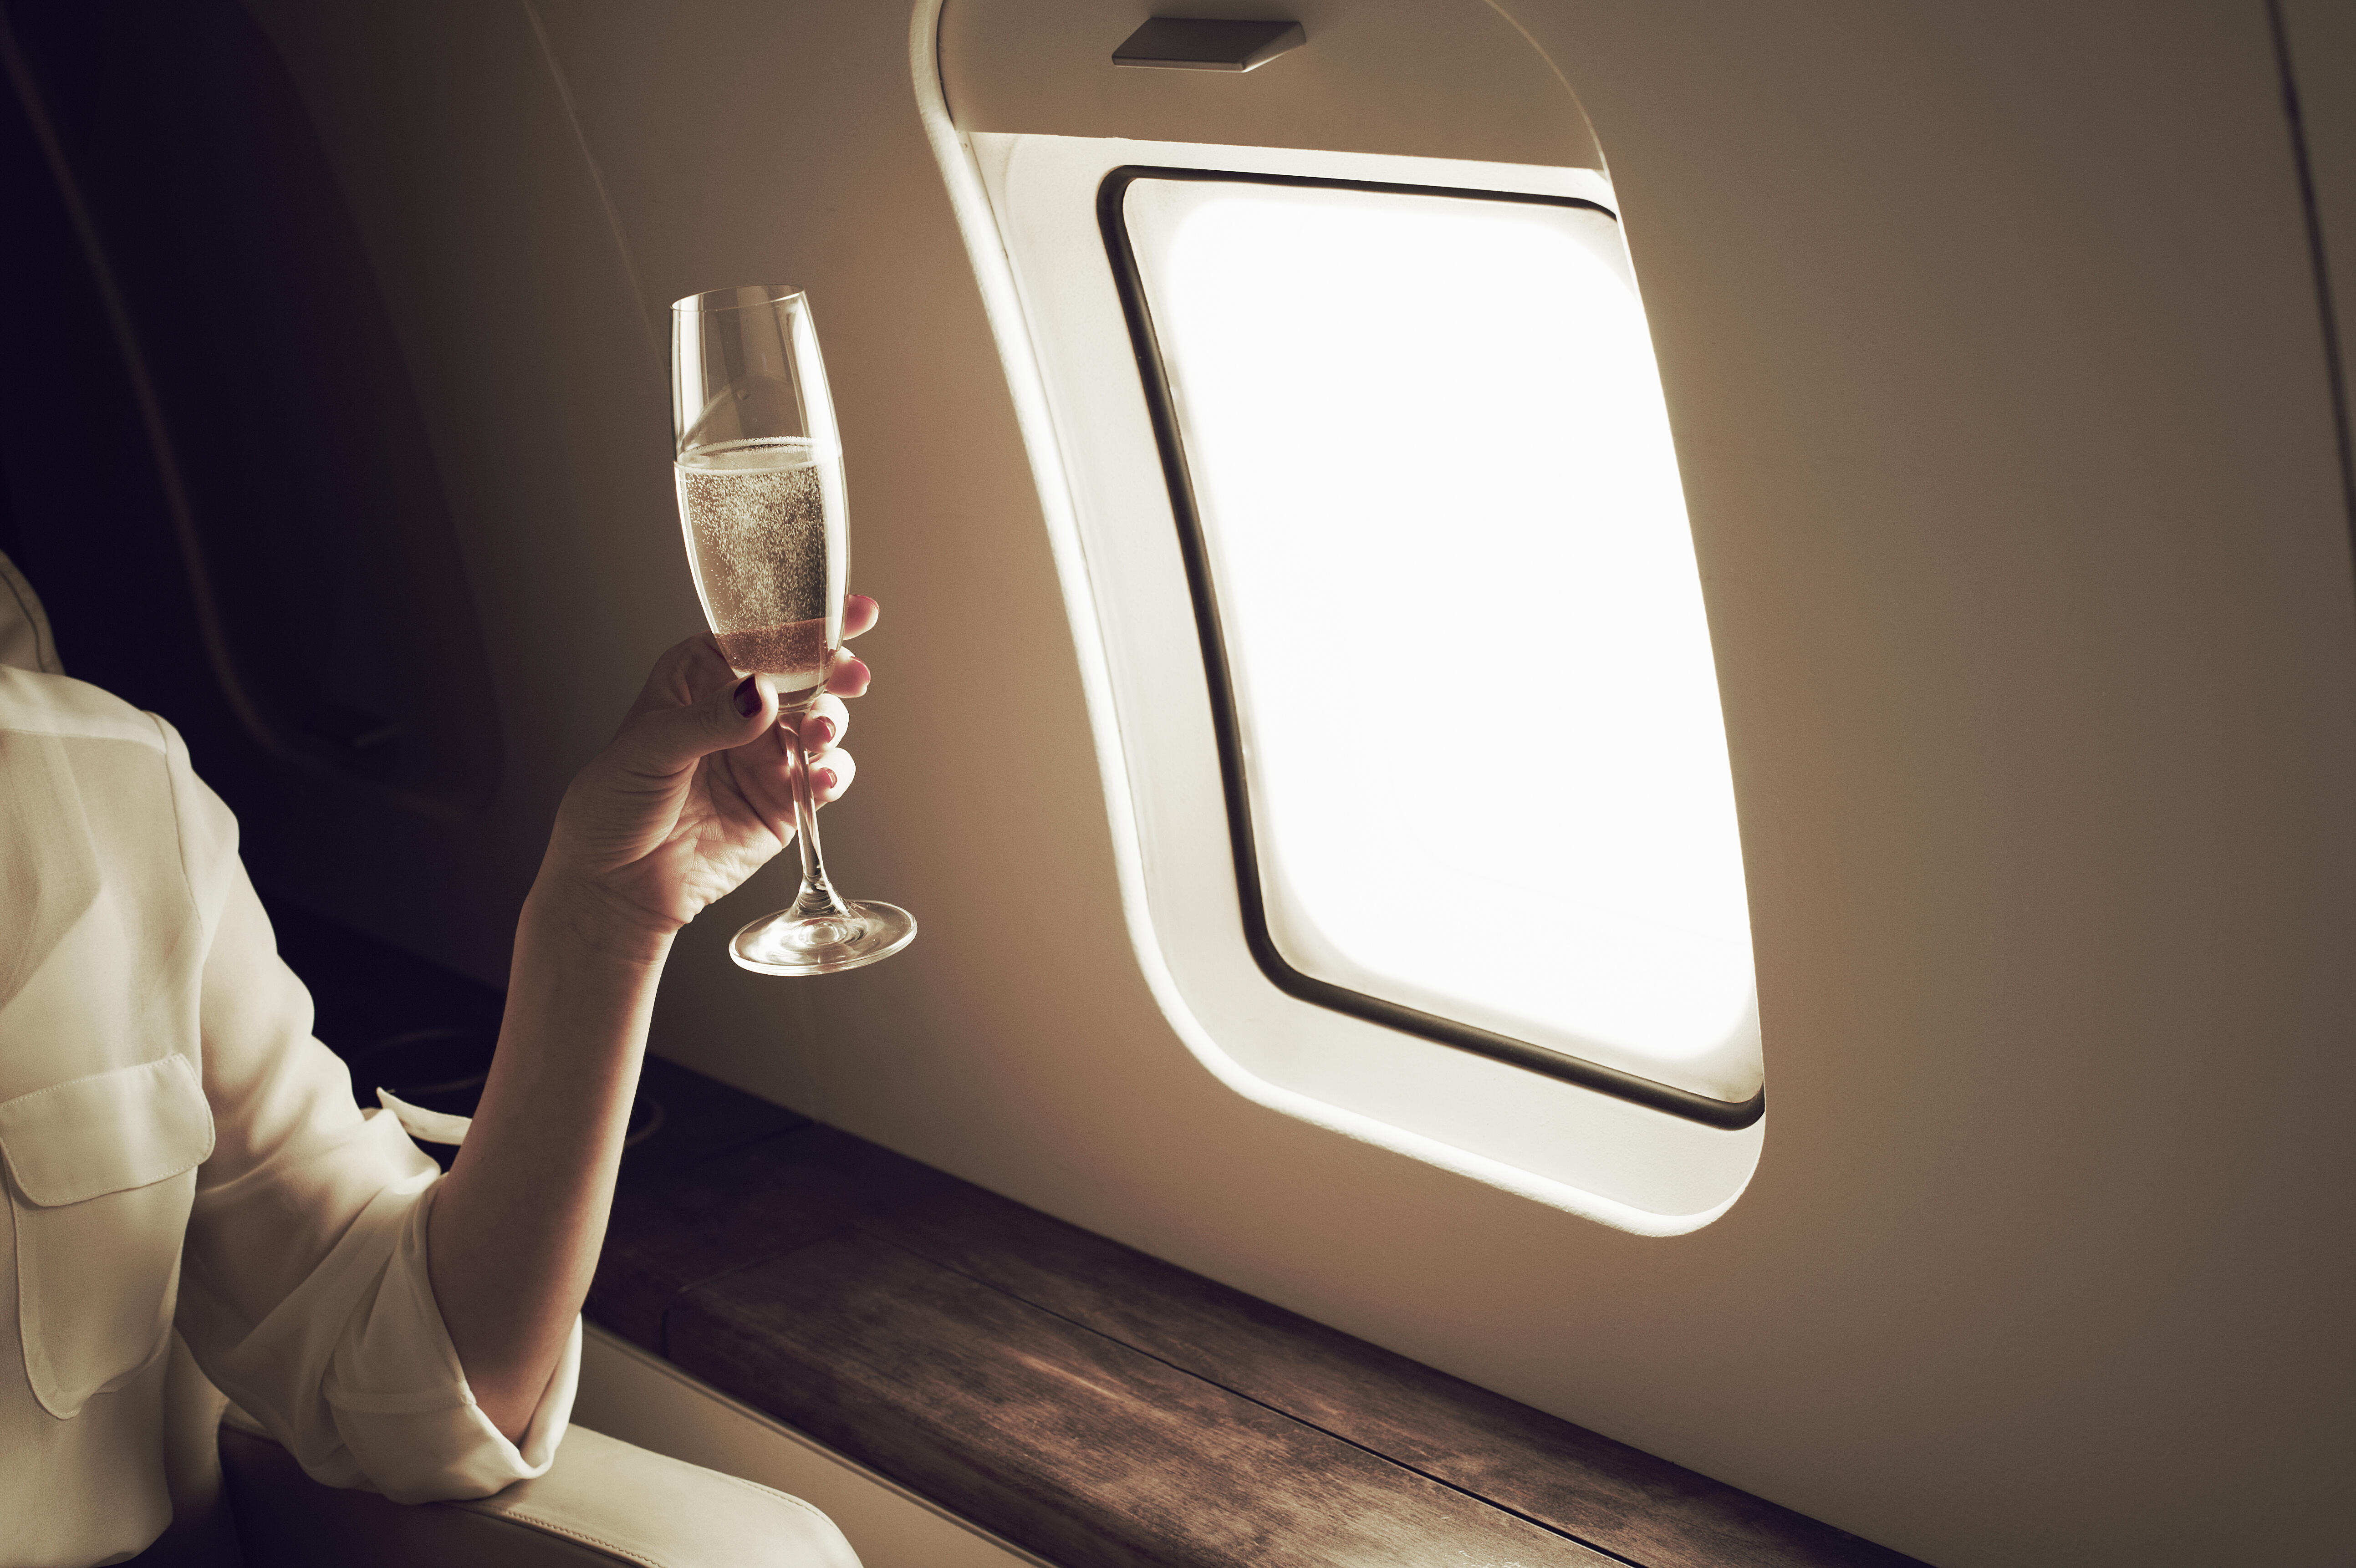 Champagne in a glass in front of an airplane window